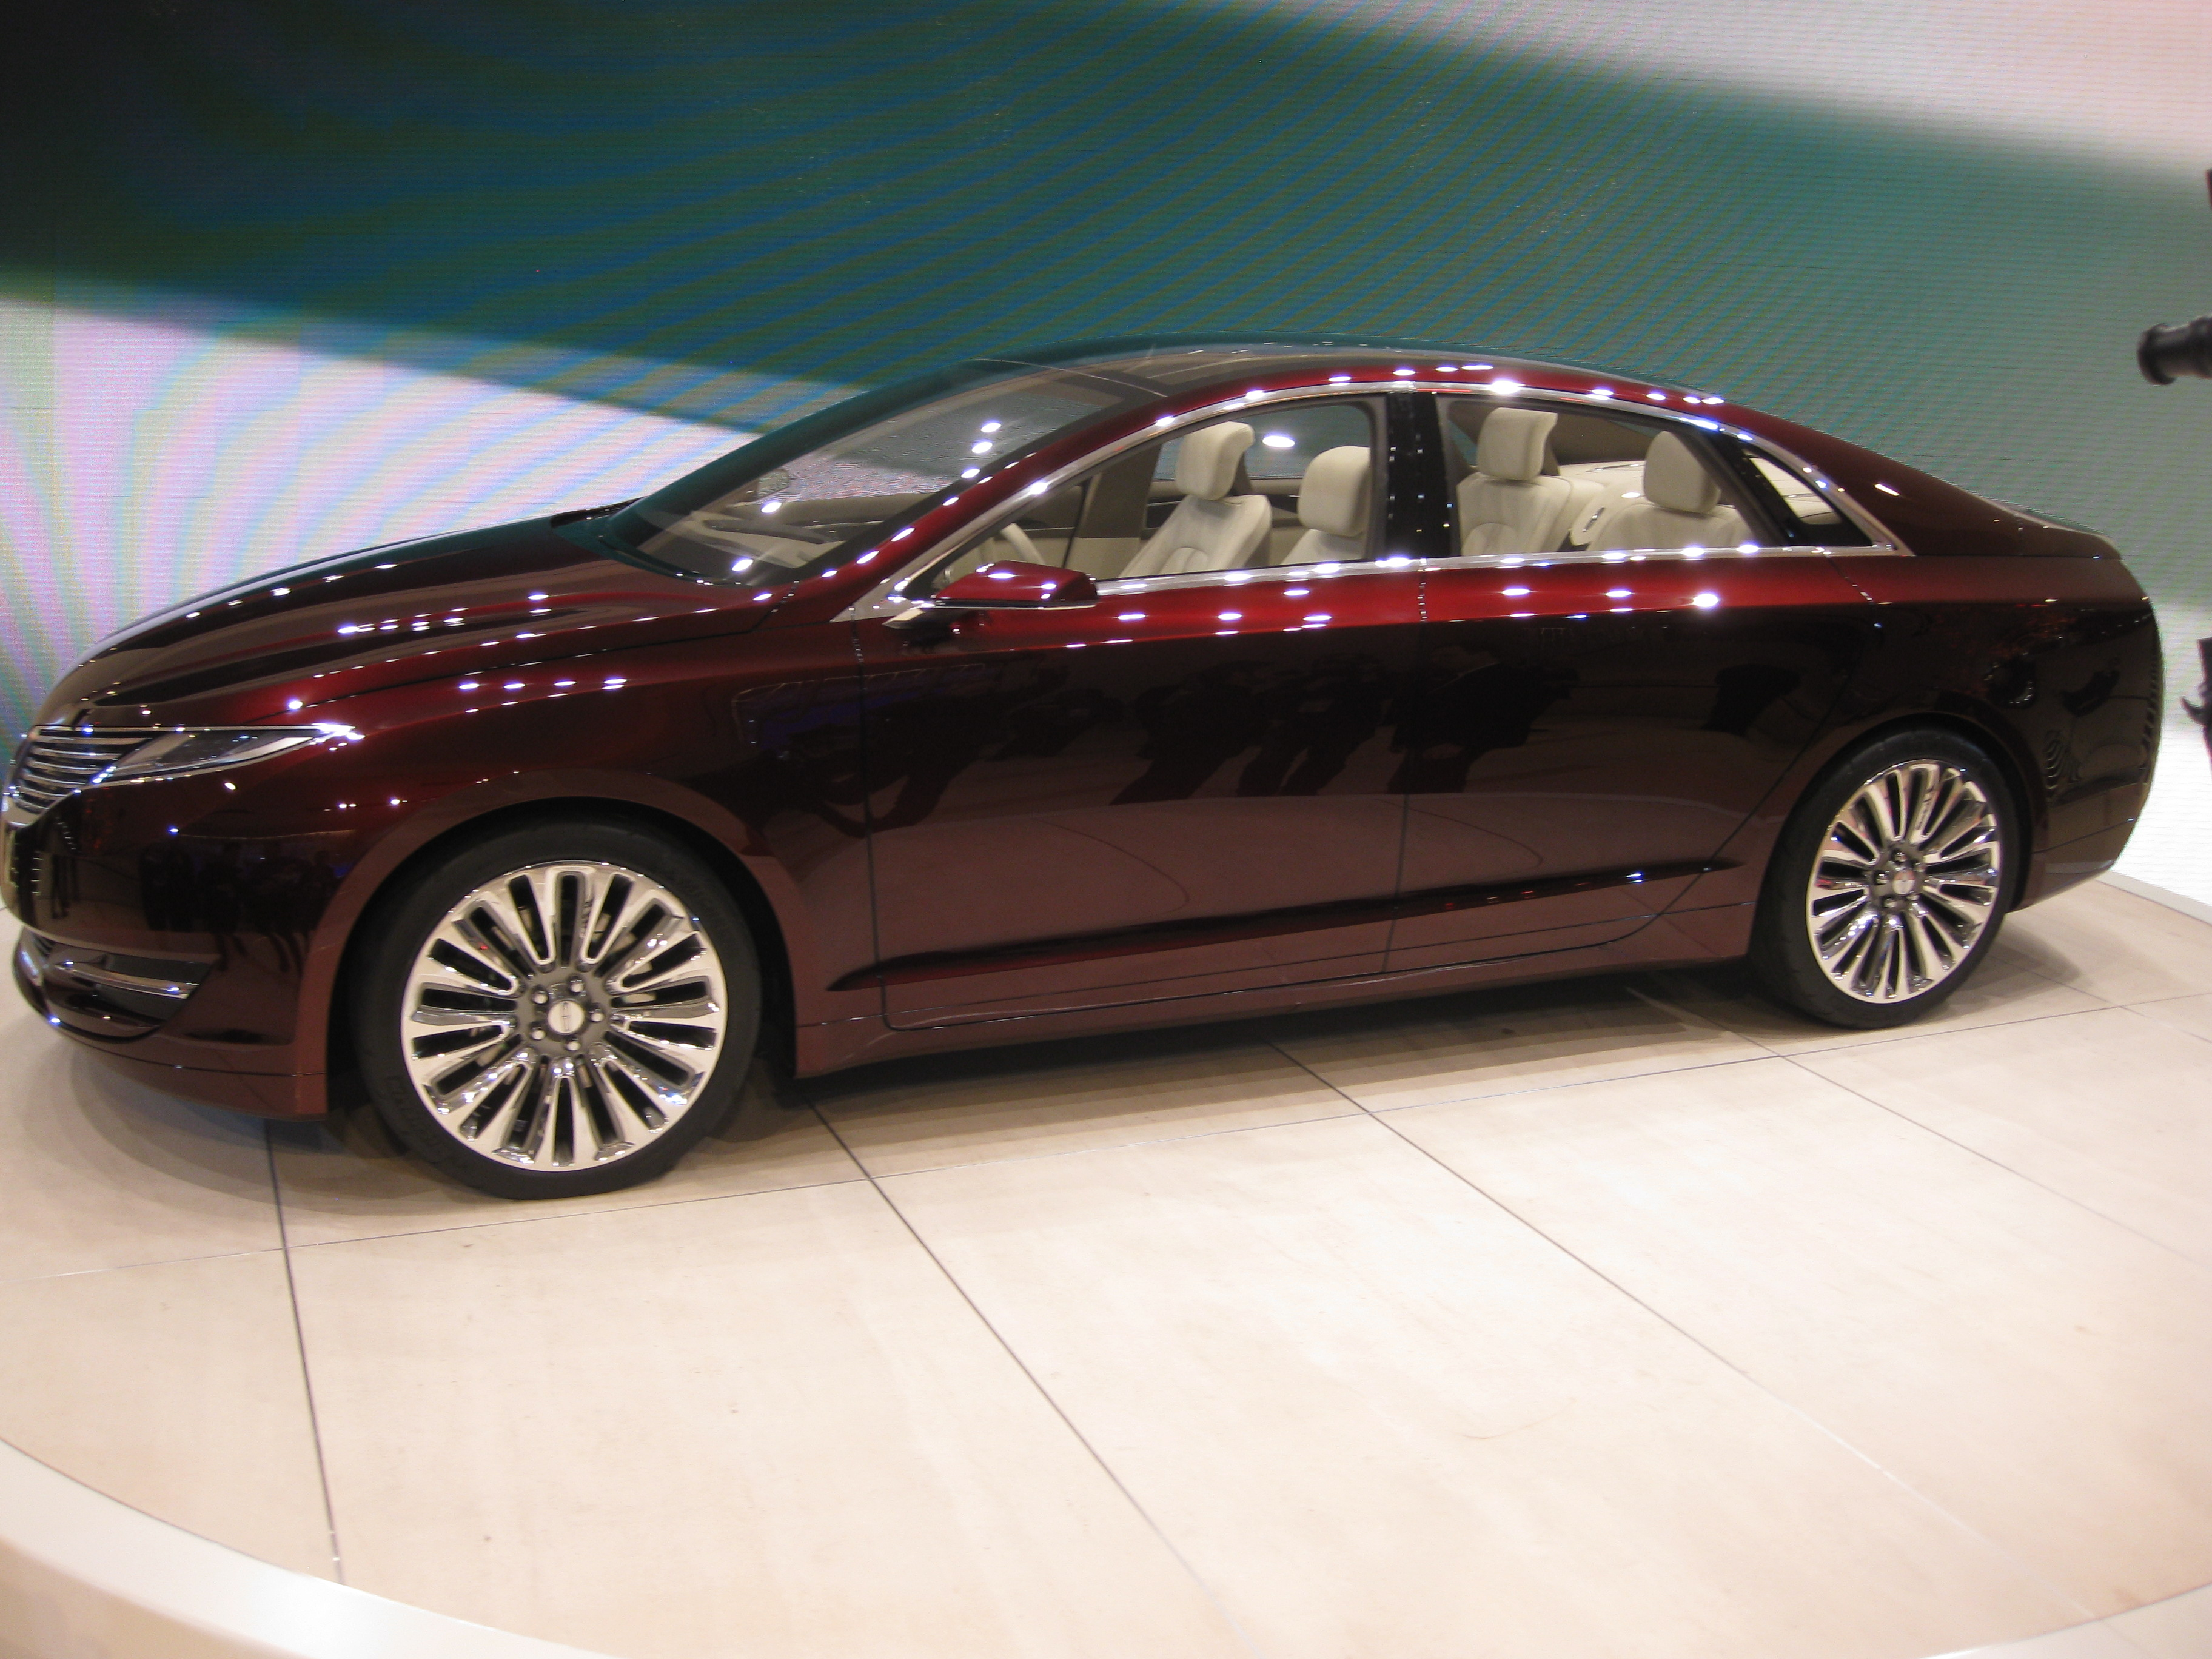 https://upload.wikimedia.org/wikipedia/commons/a/a4/Lincoln_MKZ_Concept_at_NAIAS_2012_%286679778469%29.jpg